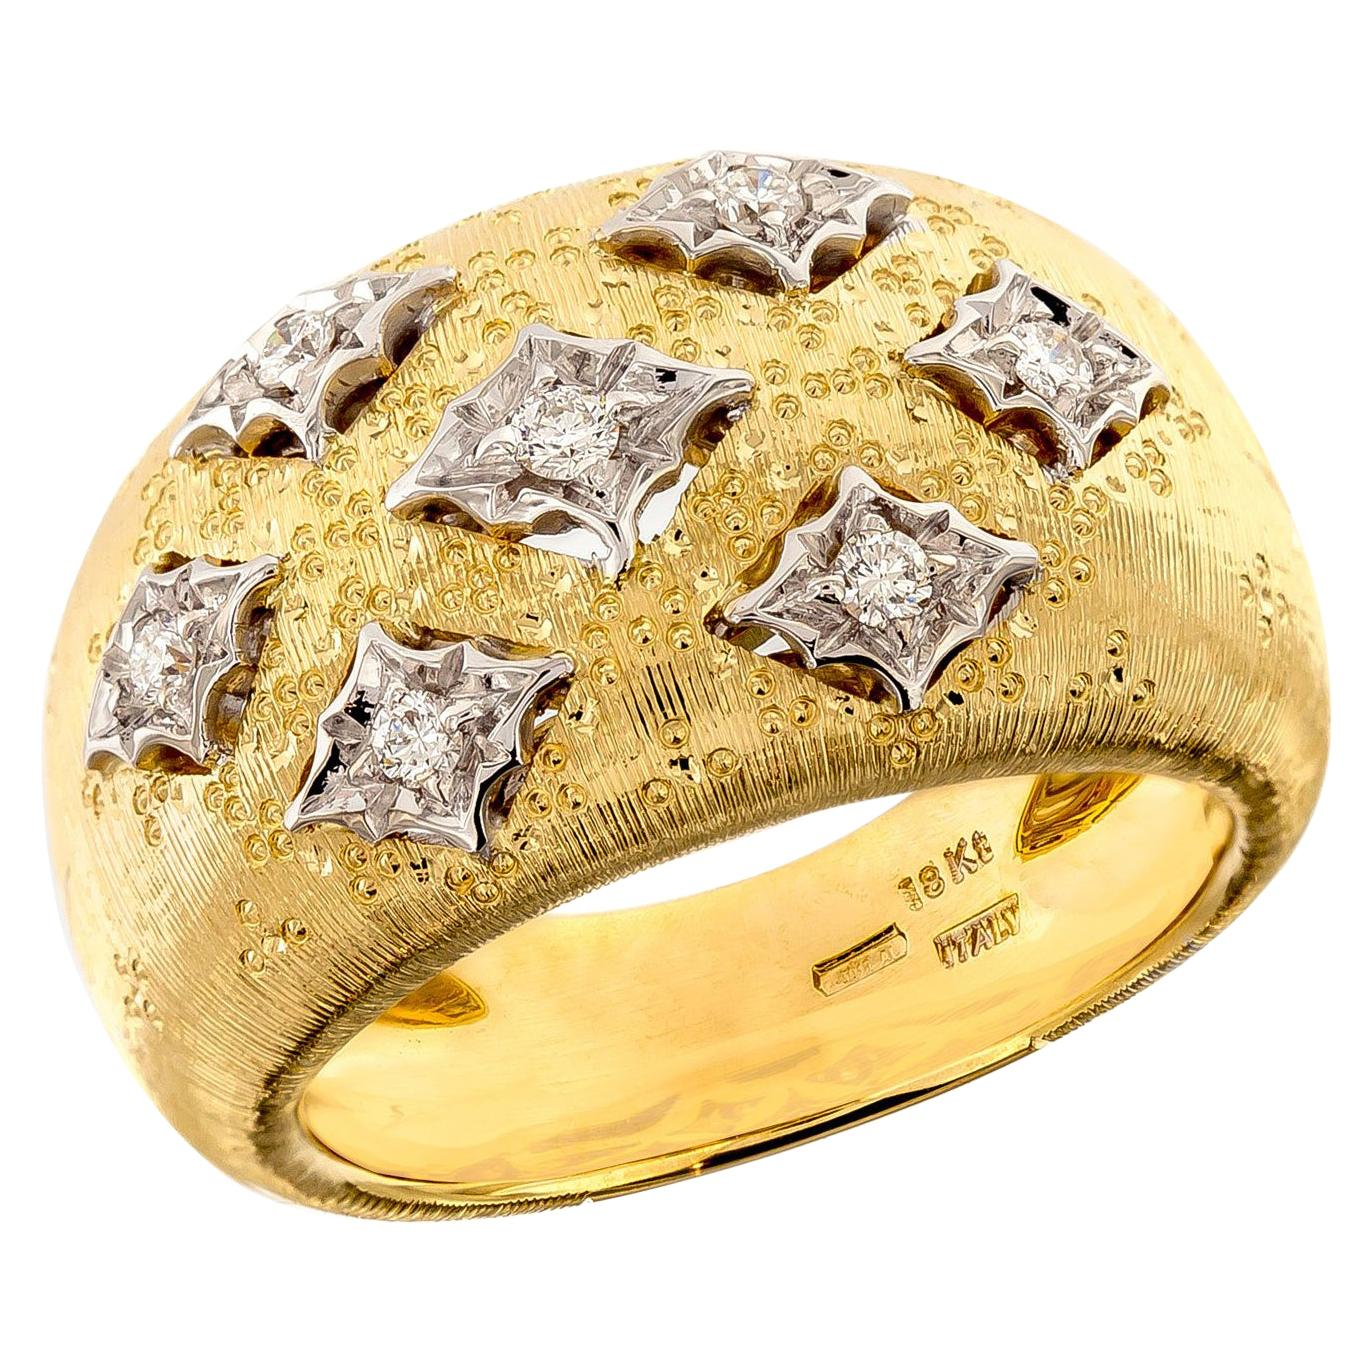 Florentine Finished 18 Karat Yellow Gold and Diamond Dome Ring